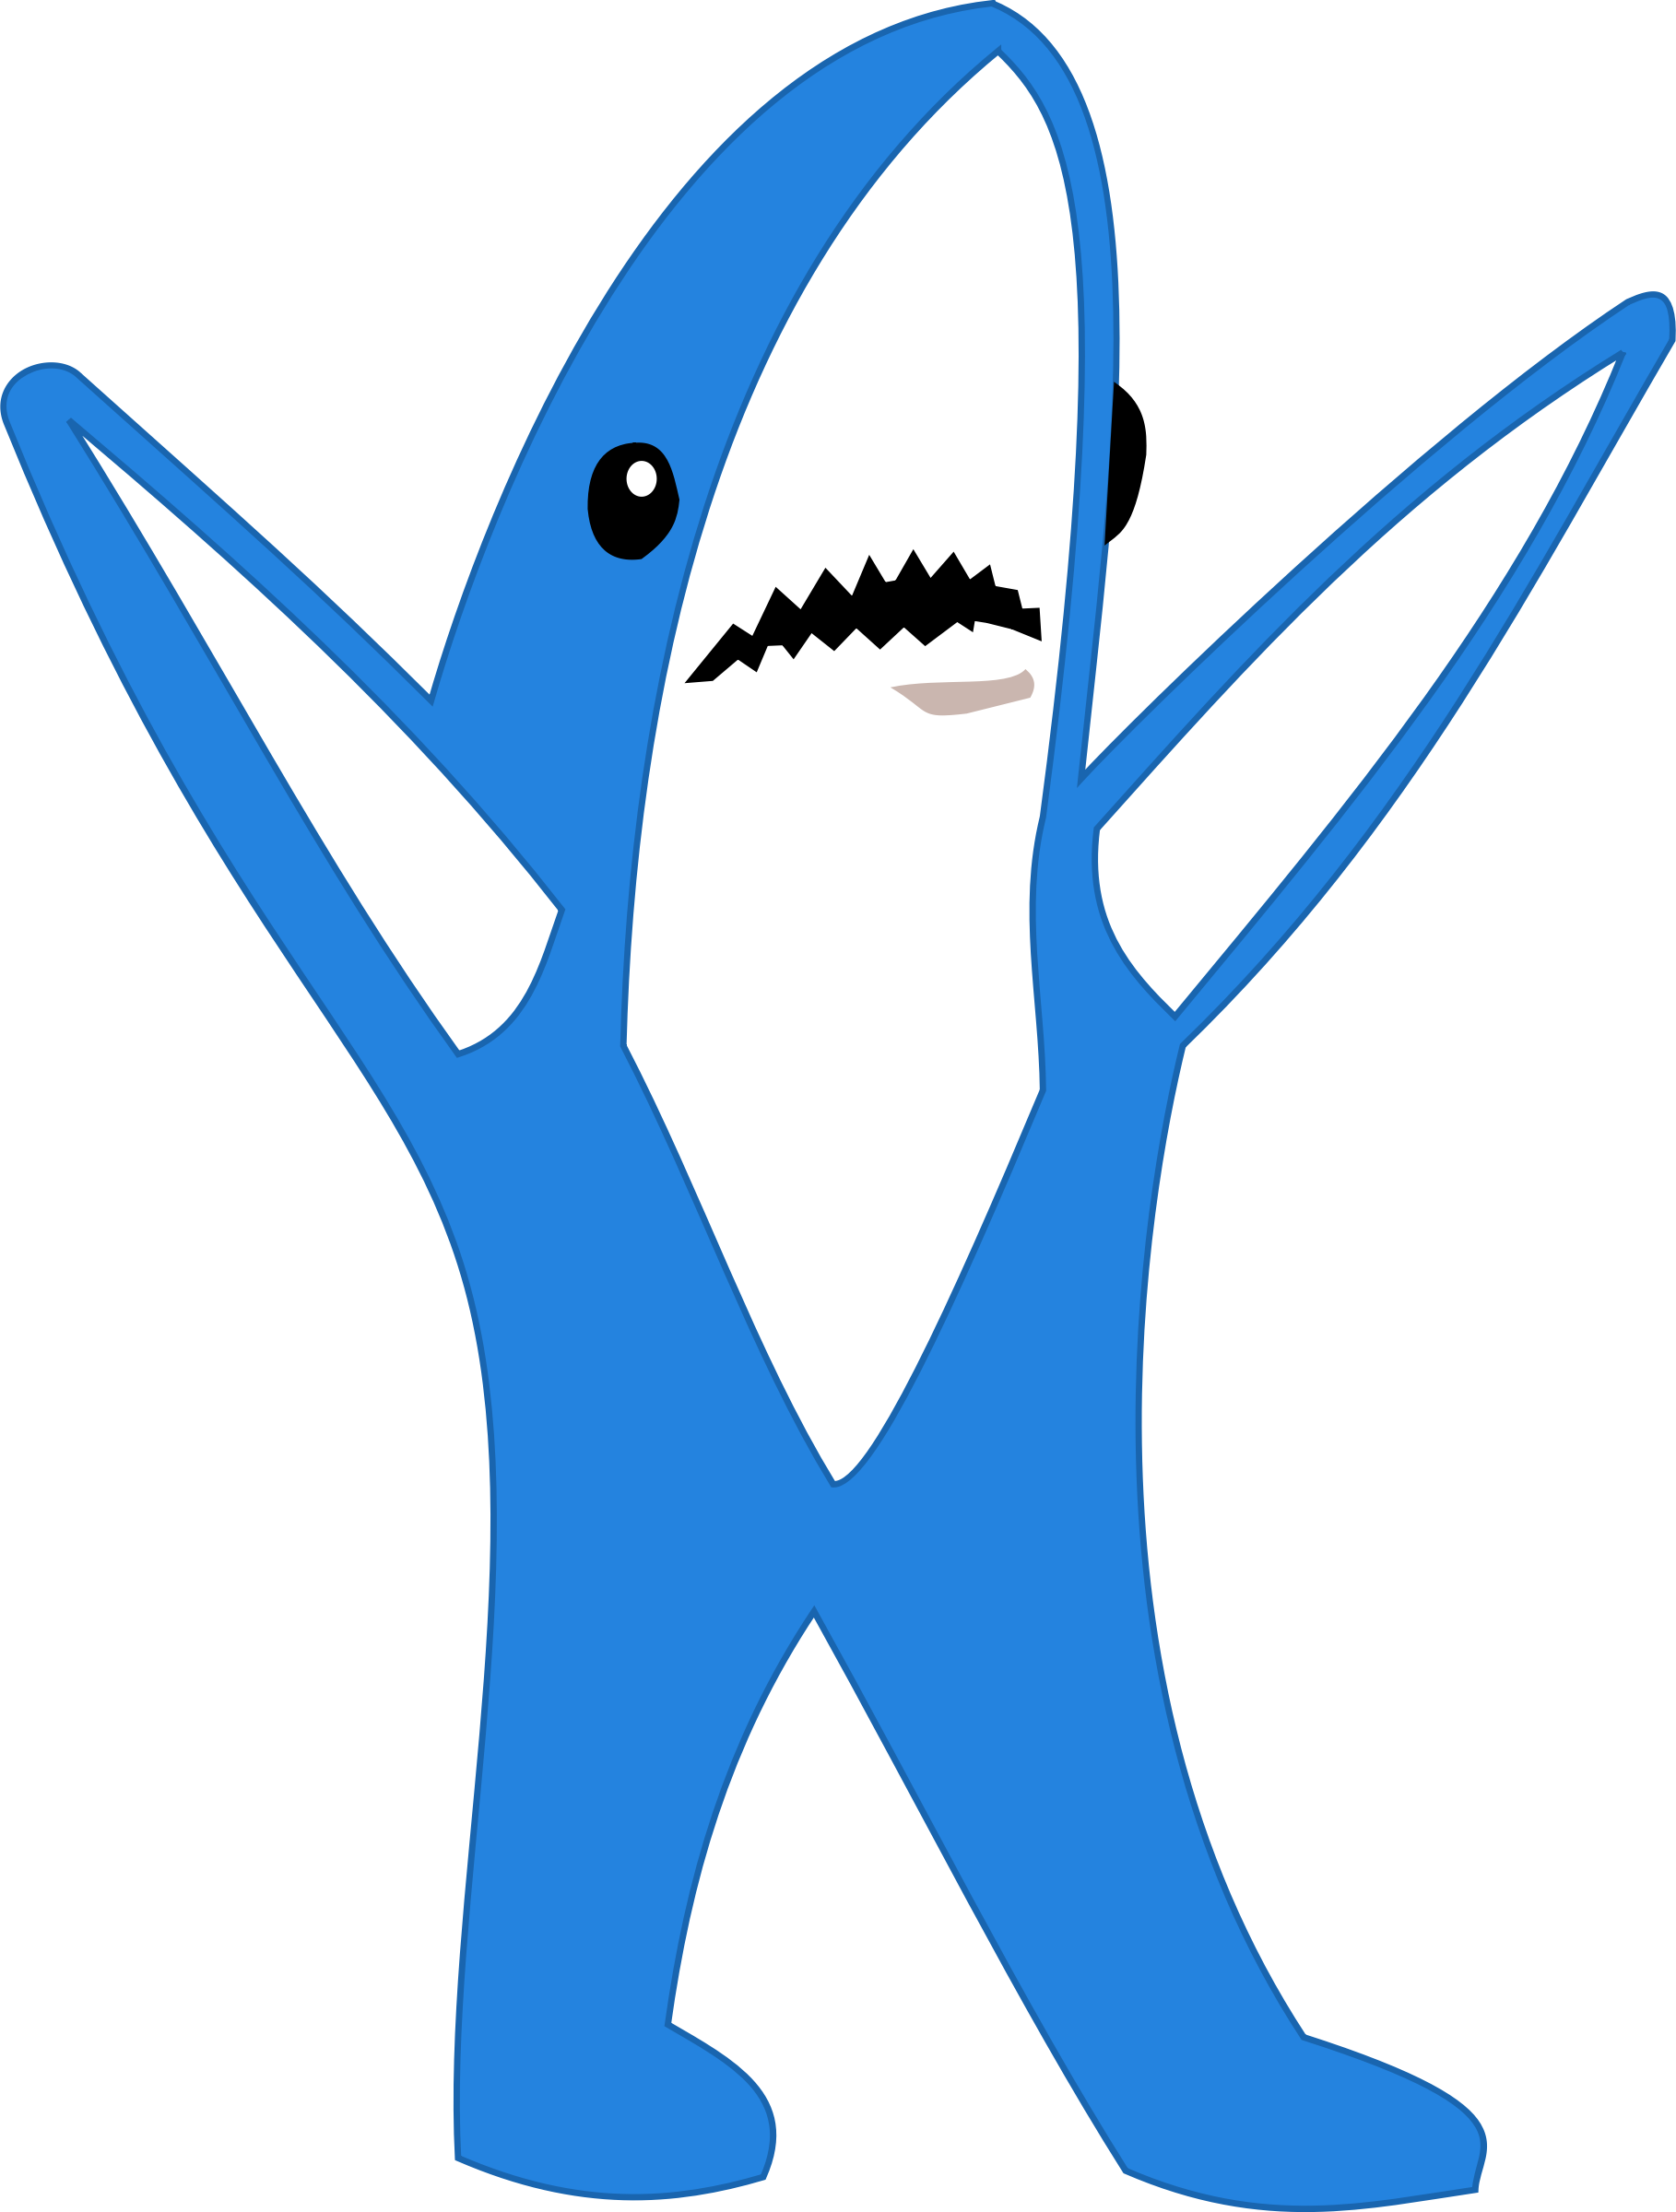 Shark Vector Free Download